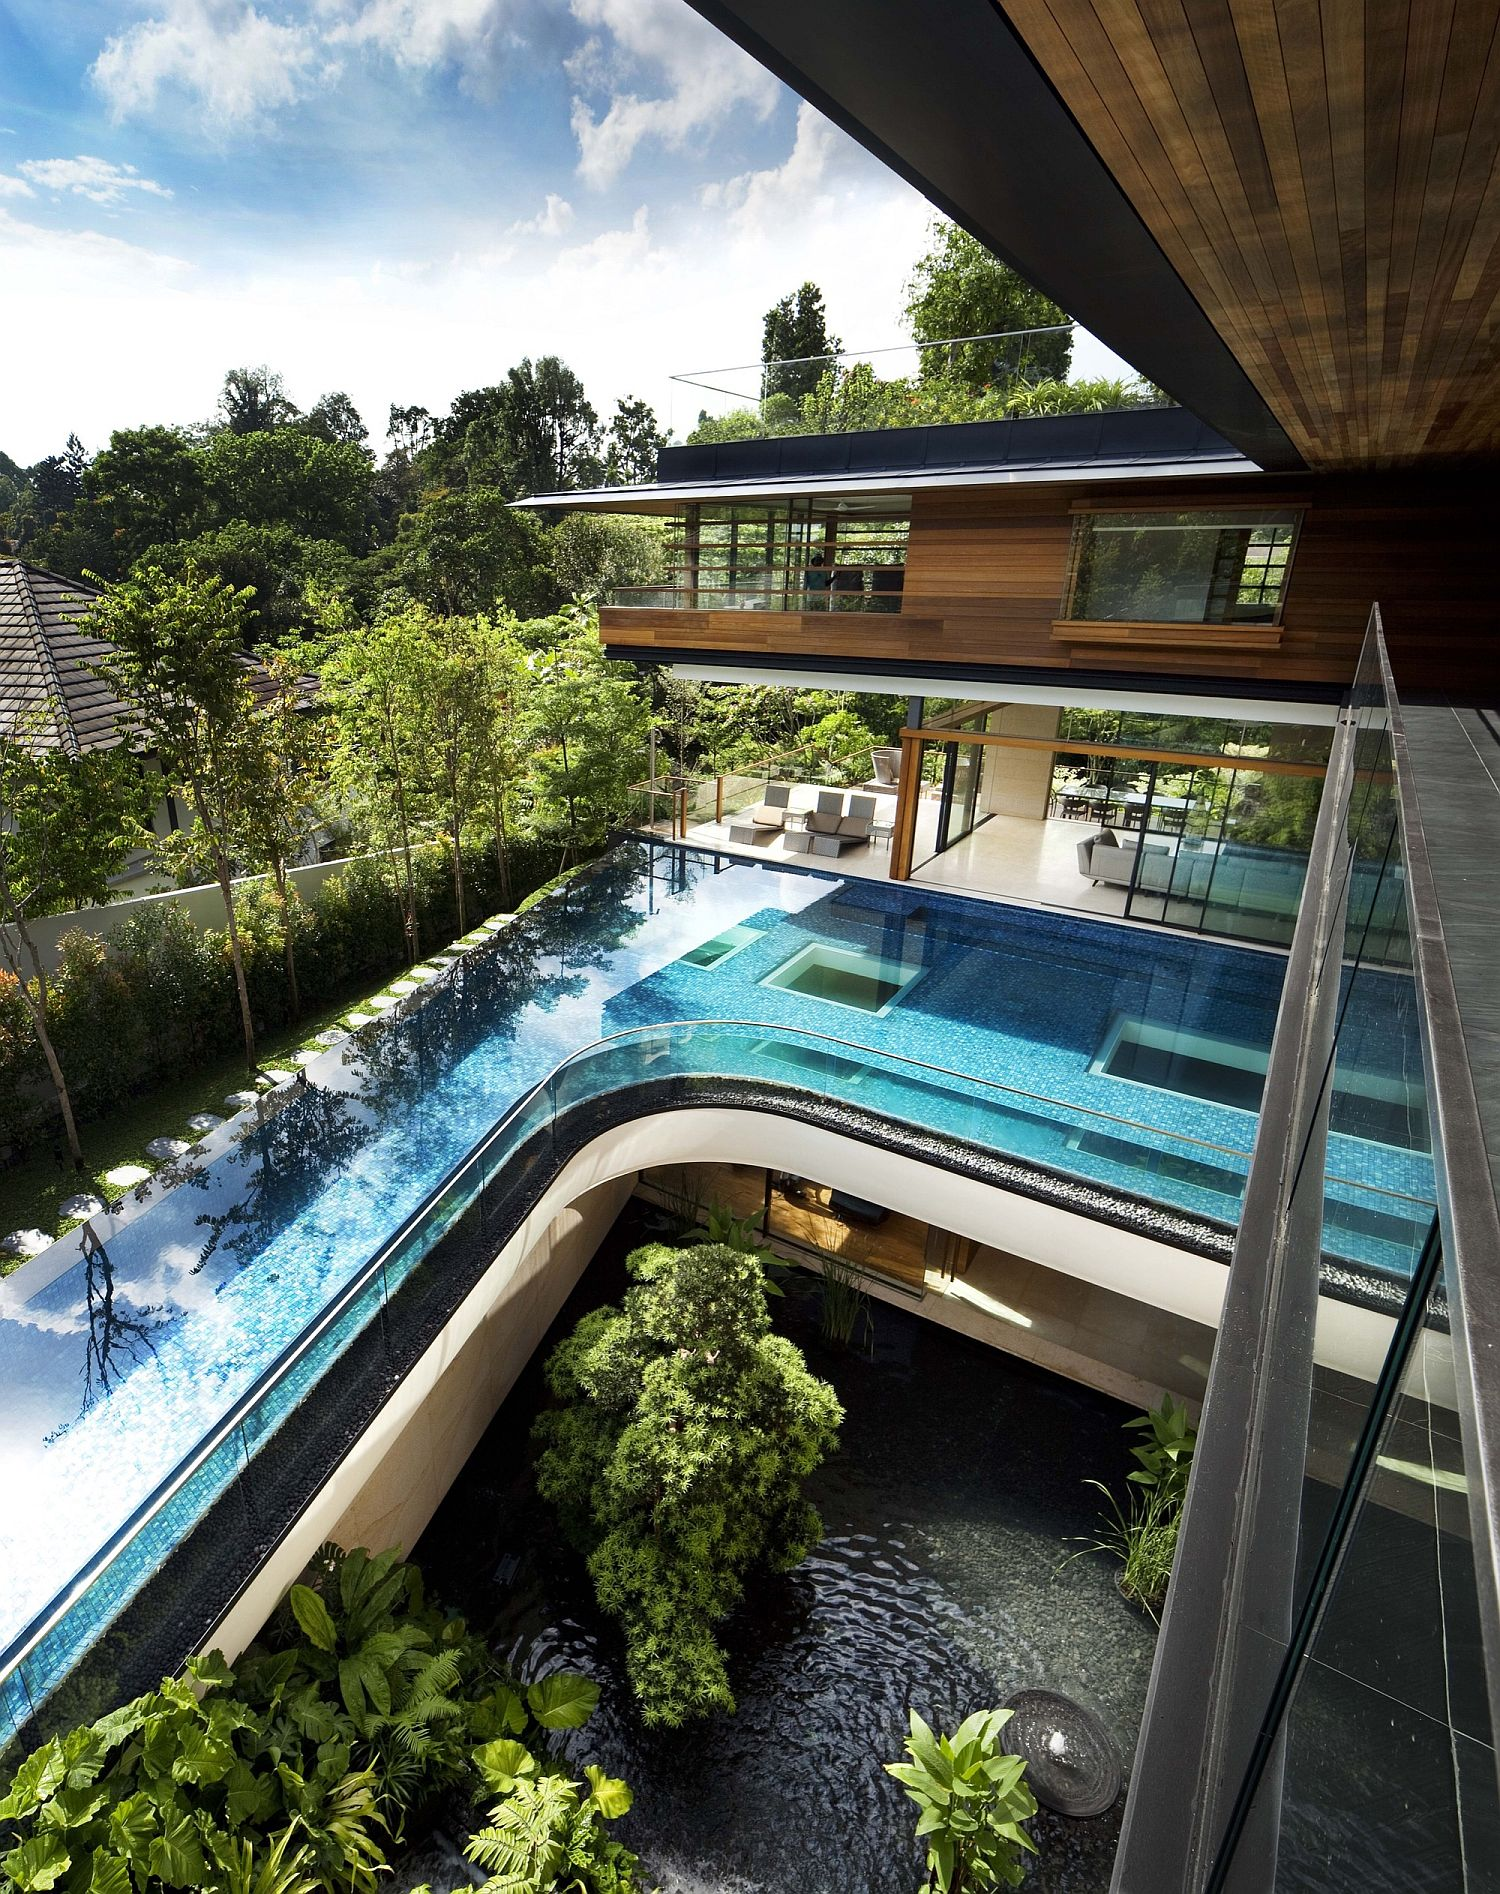 Curved swimming pool on the upper level with garden below